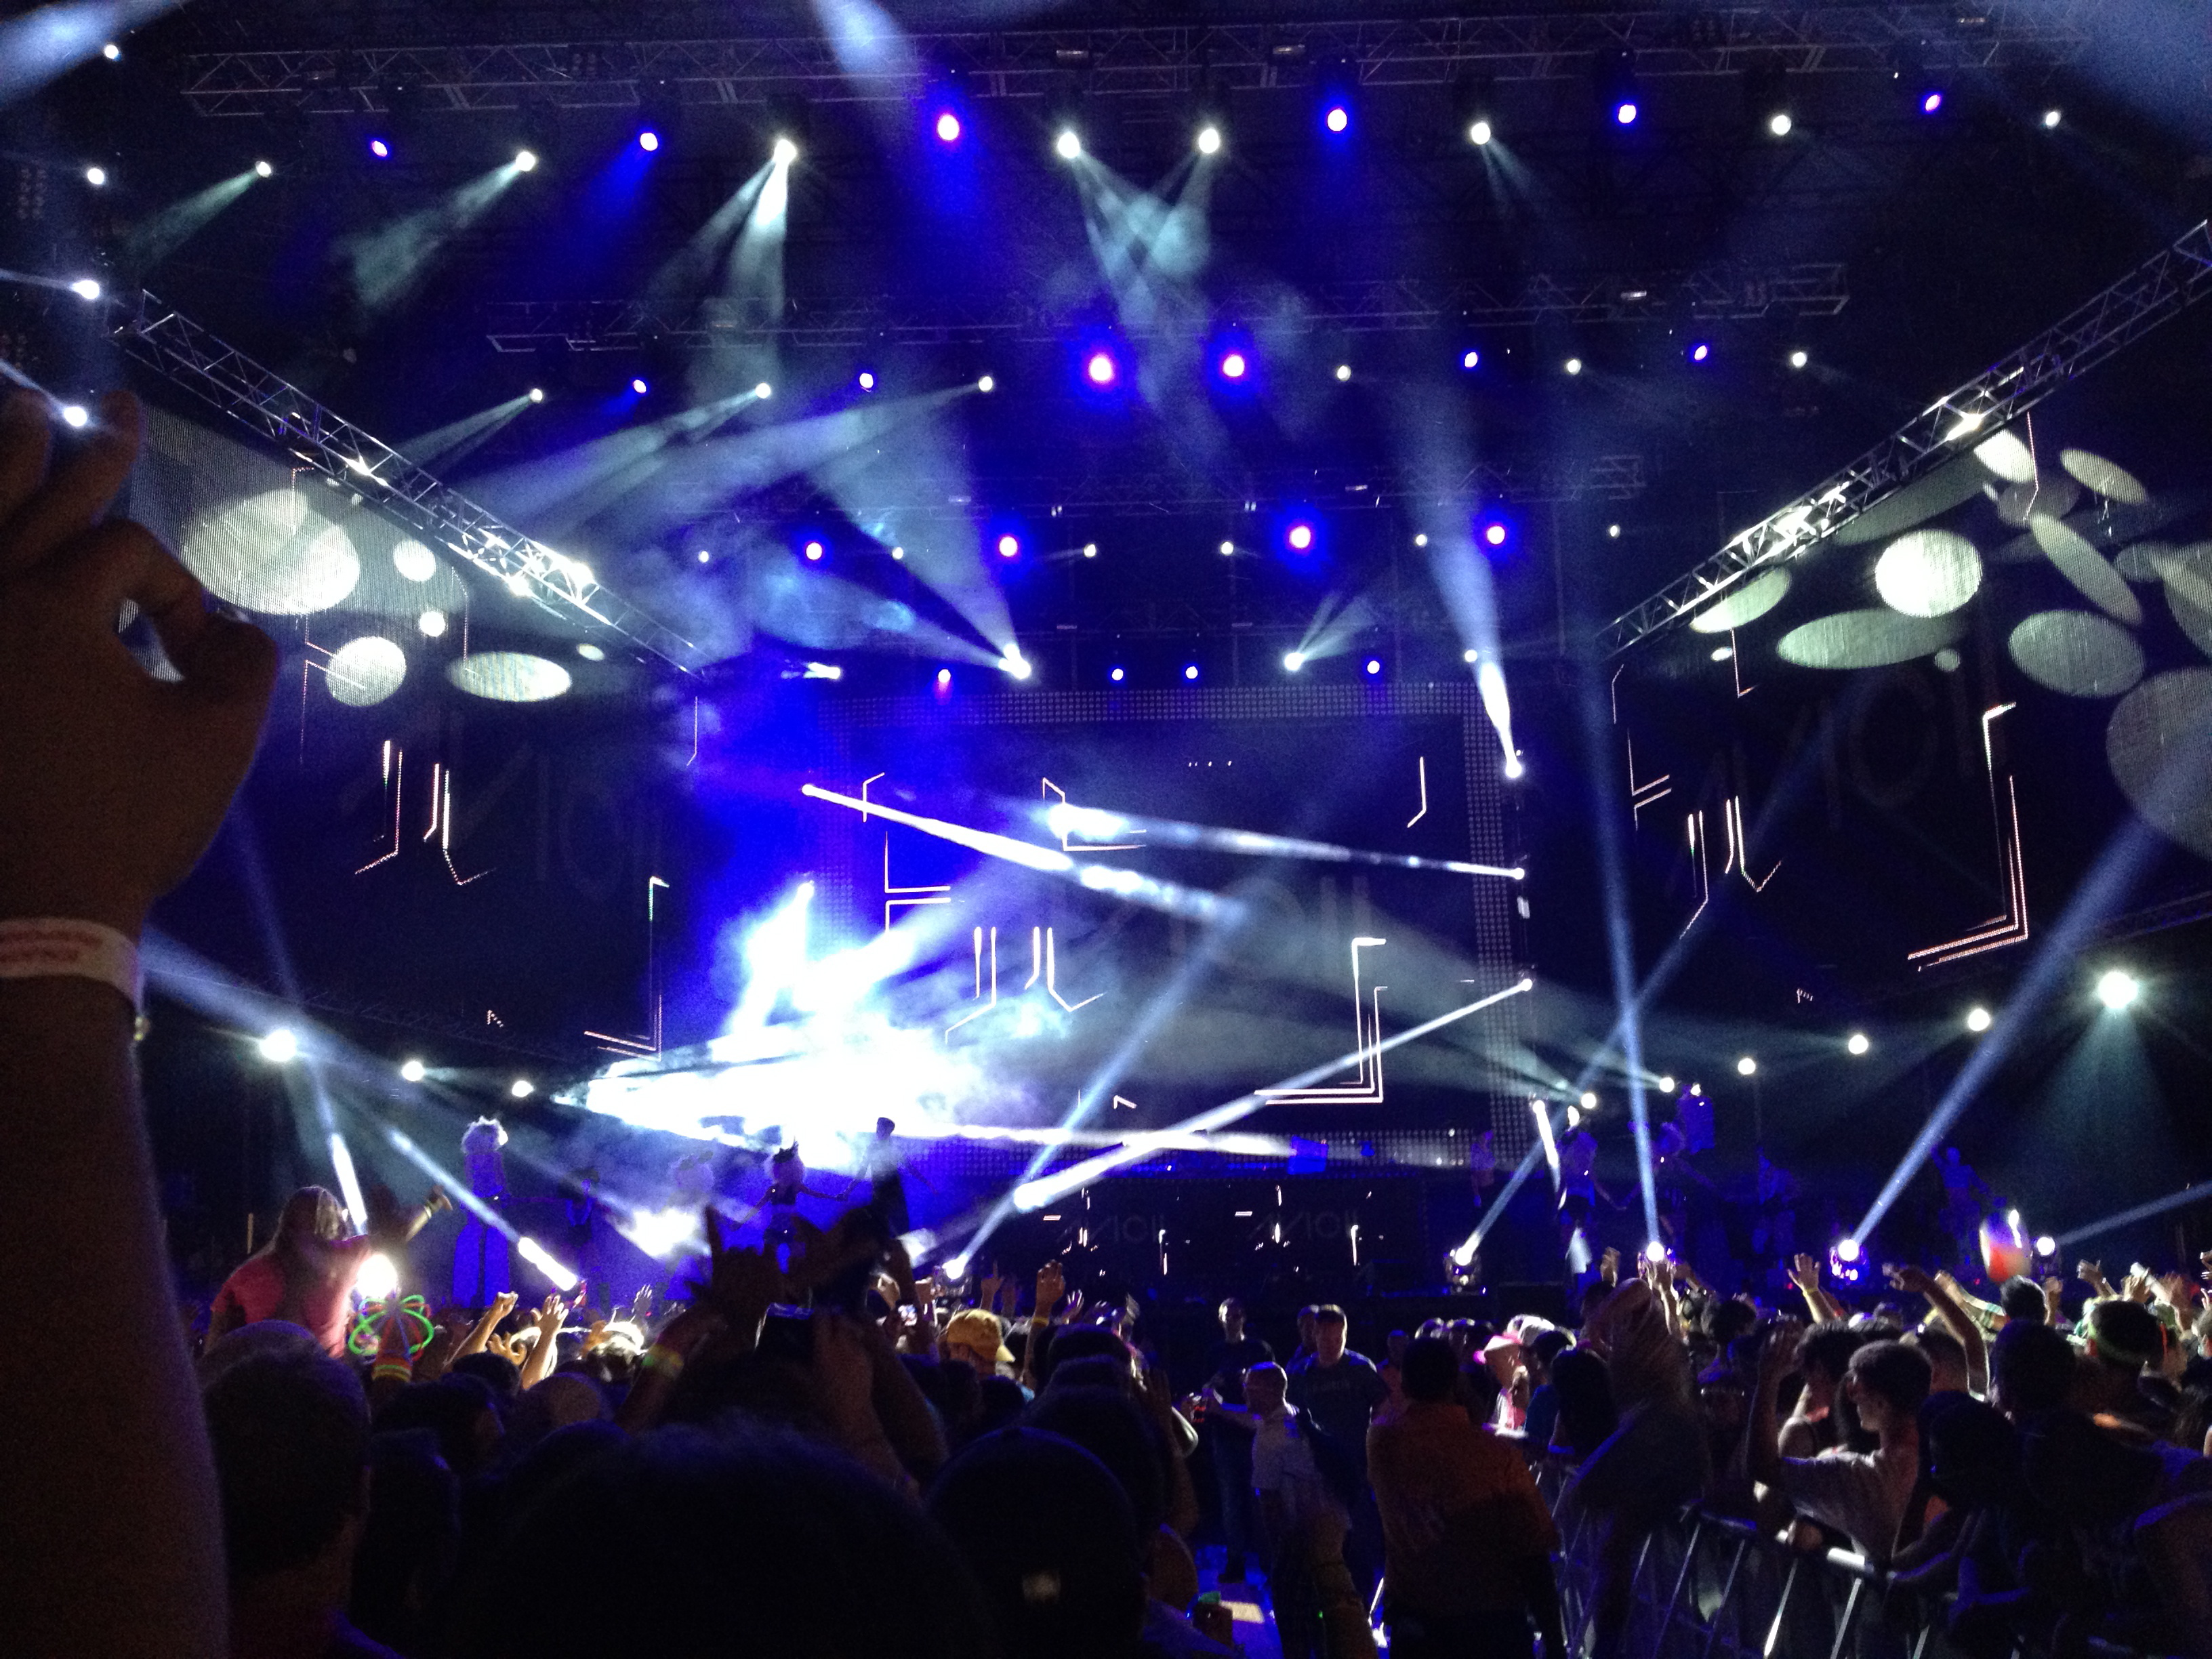 Light Show of a Stage at EDC NY